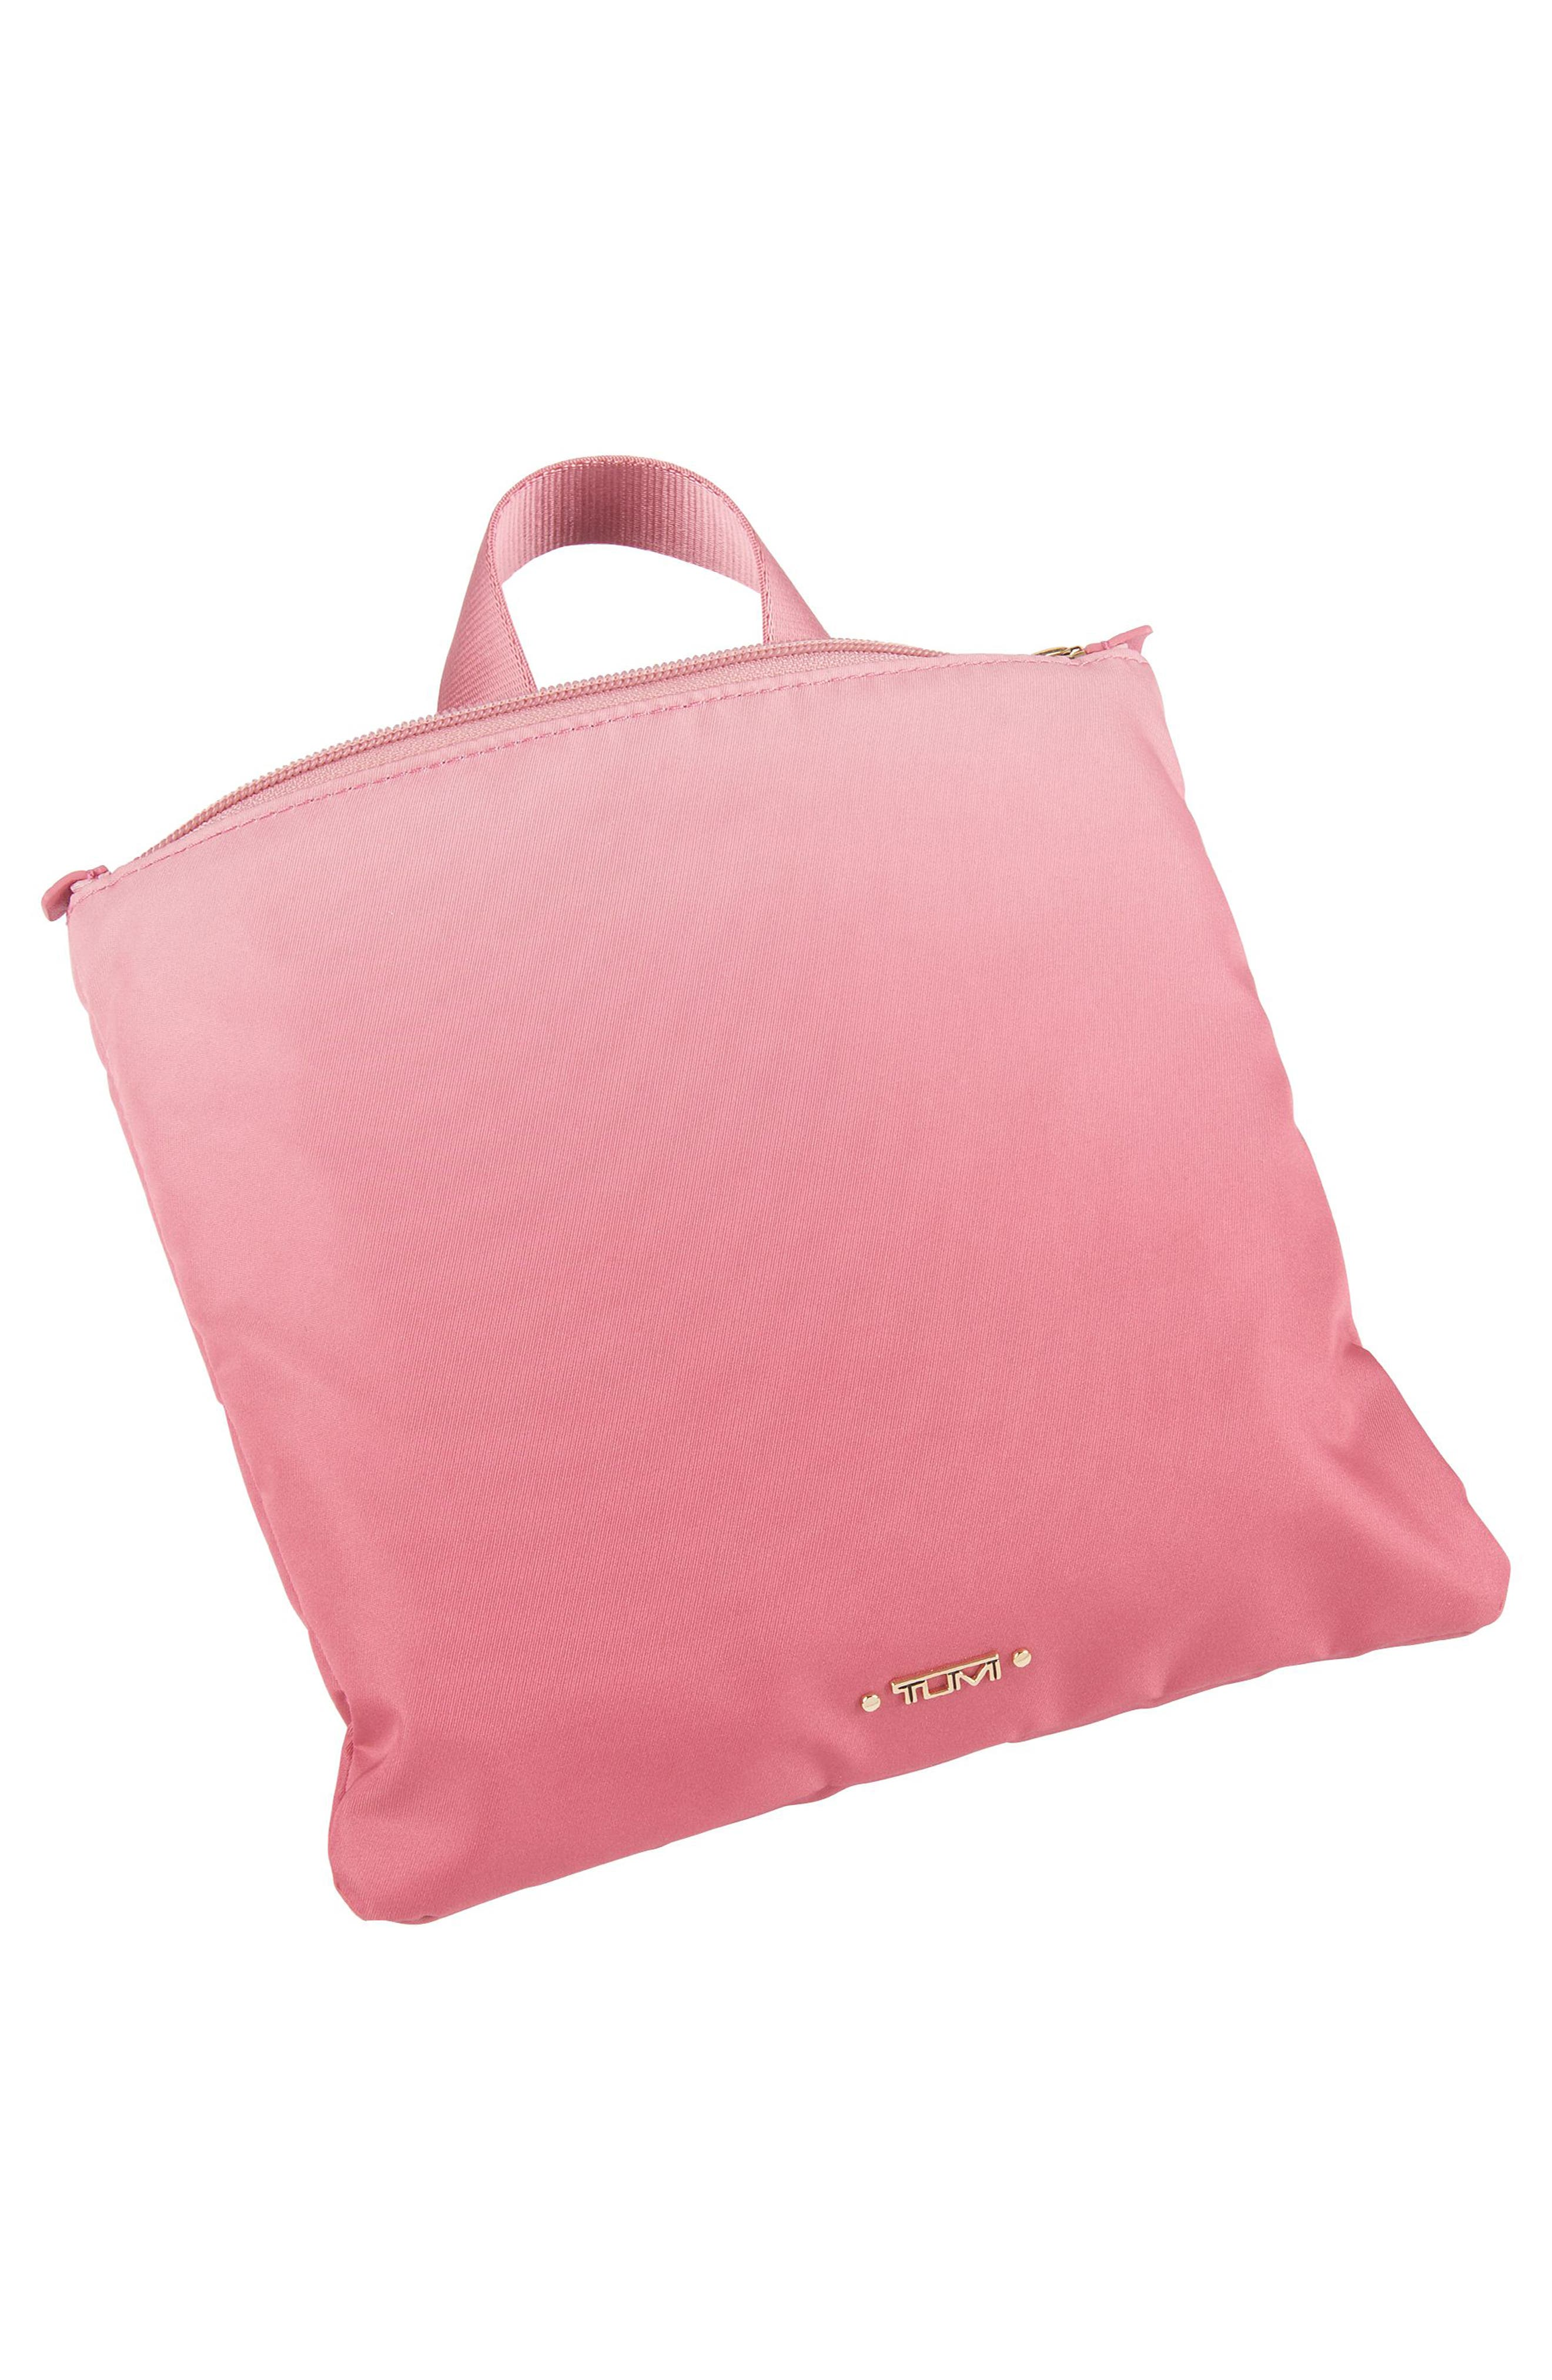 Voyageur - Just in Case Nylon Travel Backpack,                             Alternate thumbnail 4, color,                             PINK OMBRE